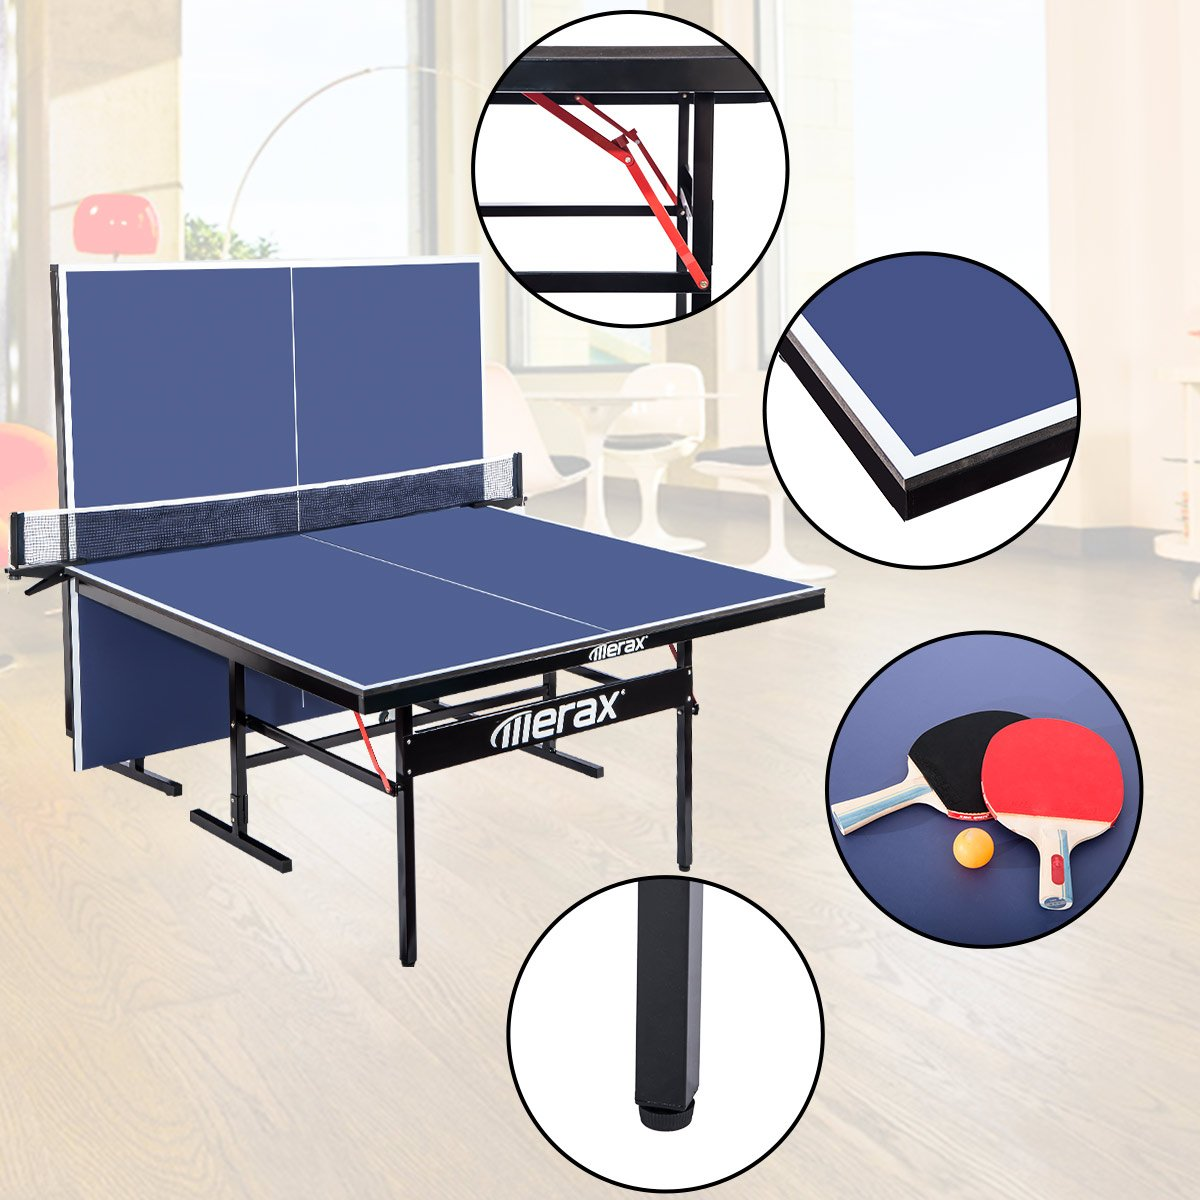 e056344940c Amazon.com   Merax Everest Series Indoor Folding Table Tennis Table with Net  Set and Lockable Wheels   Sports   Outdoors